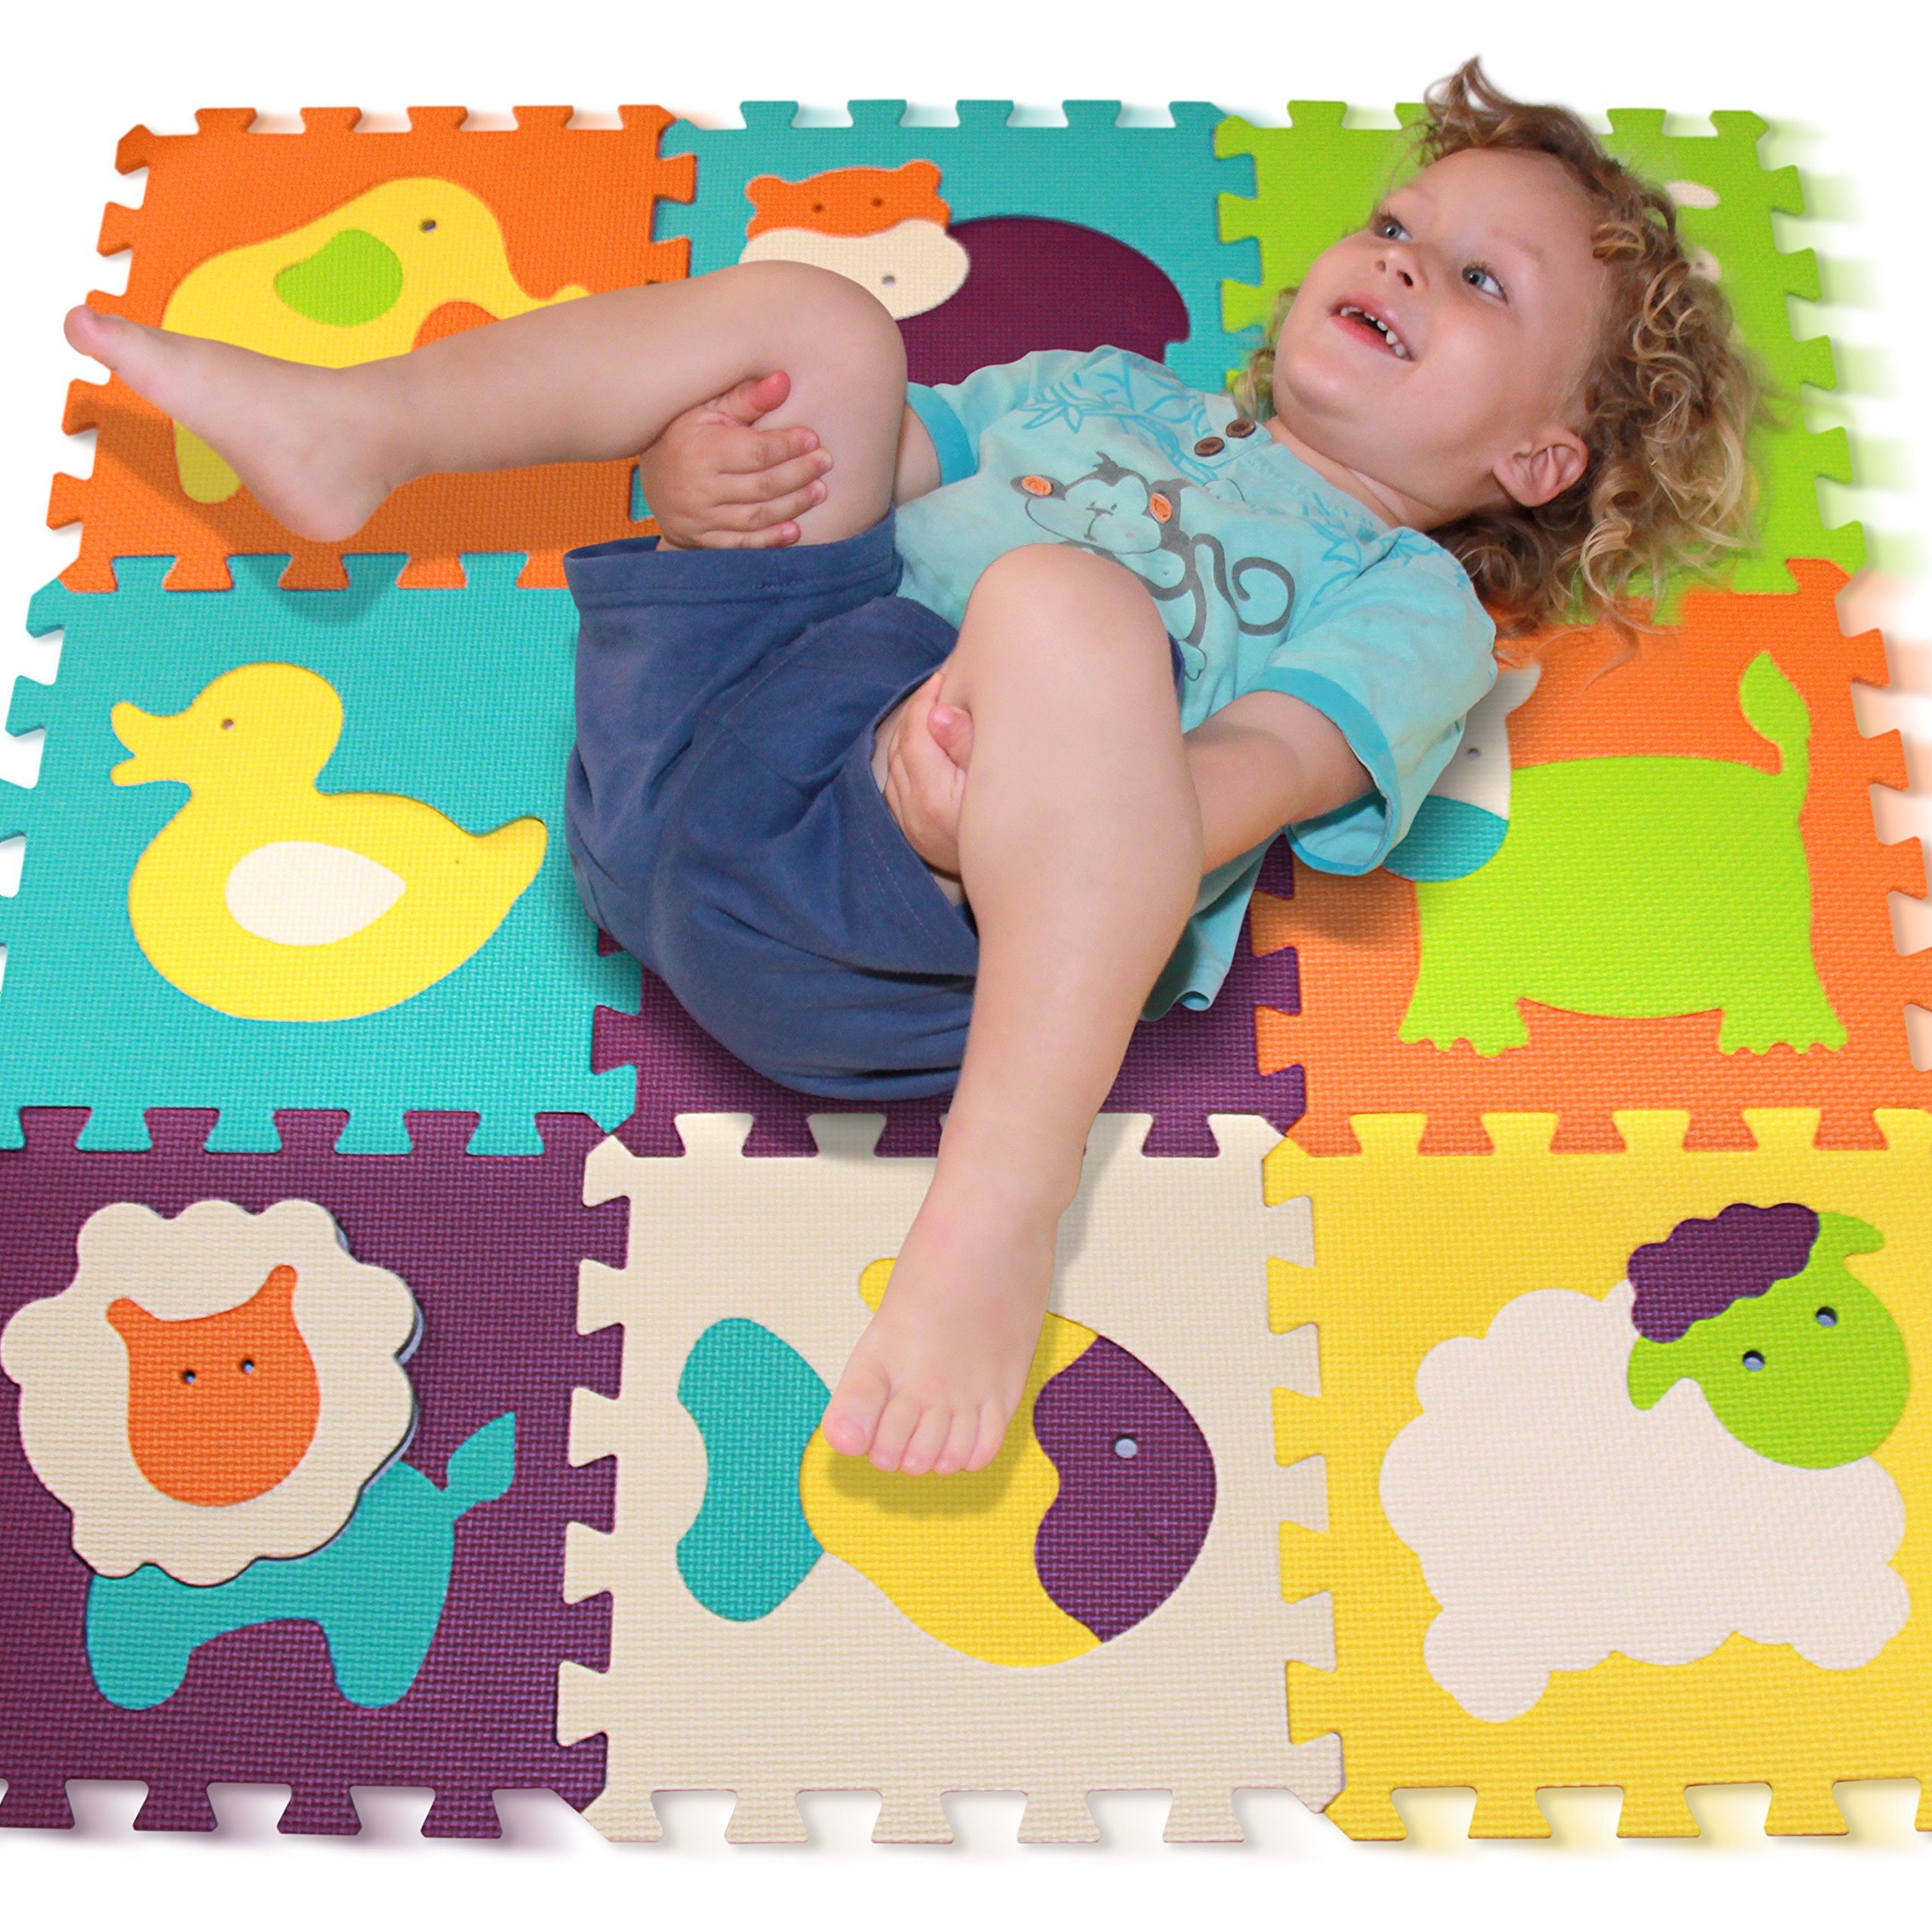 toys blanket bebe in from mats floor carpet child children playmat crawling item baby mat for room rug kids infant play large